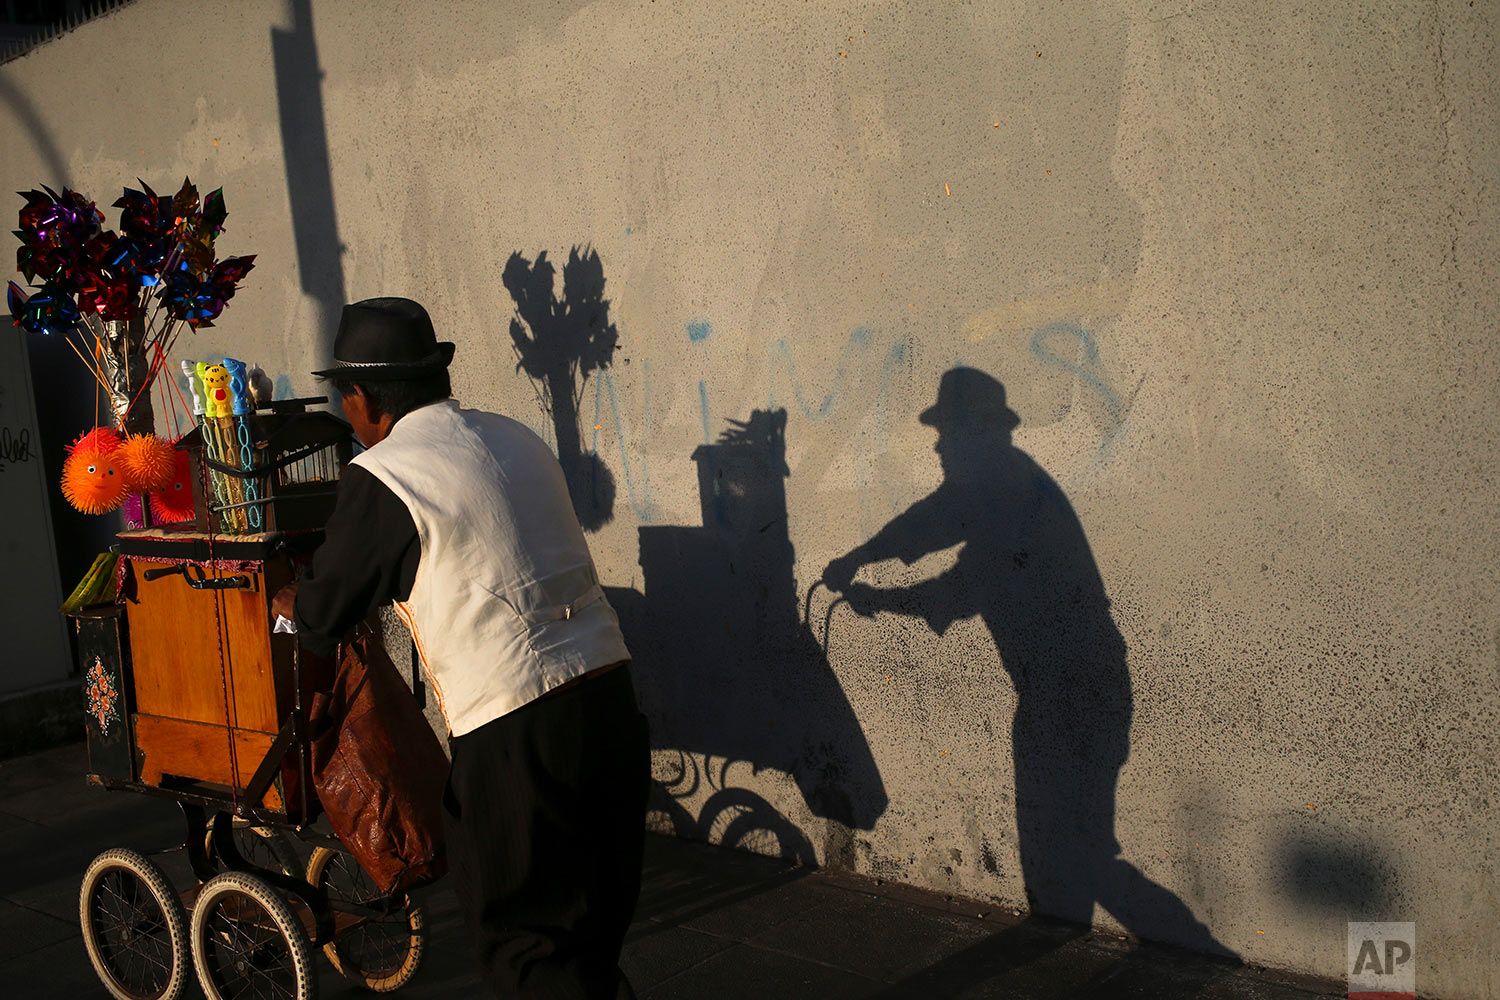 An organ grinder walks on a street in a downtown in Santiago, Chile, March 9, 2018. The organ grinder is a traditional character established in Chile since end of the XIX century, who carries a cart with a wooden musical box and a trained bird that extracts papers with messages for luck that it gives to clients. (AP Photo/Esteban Felix)